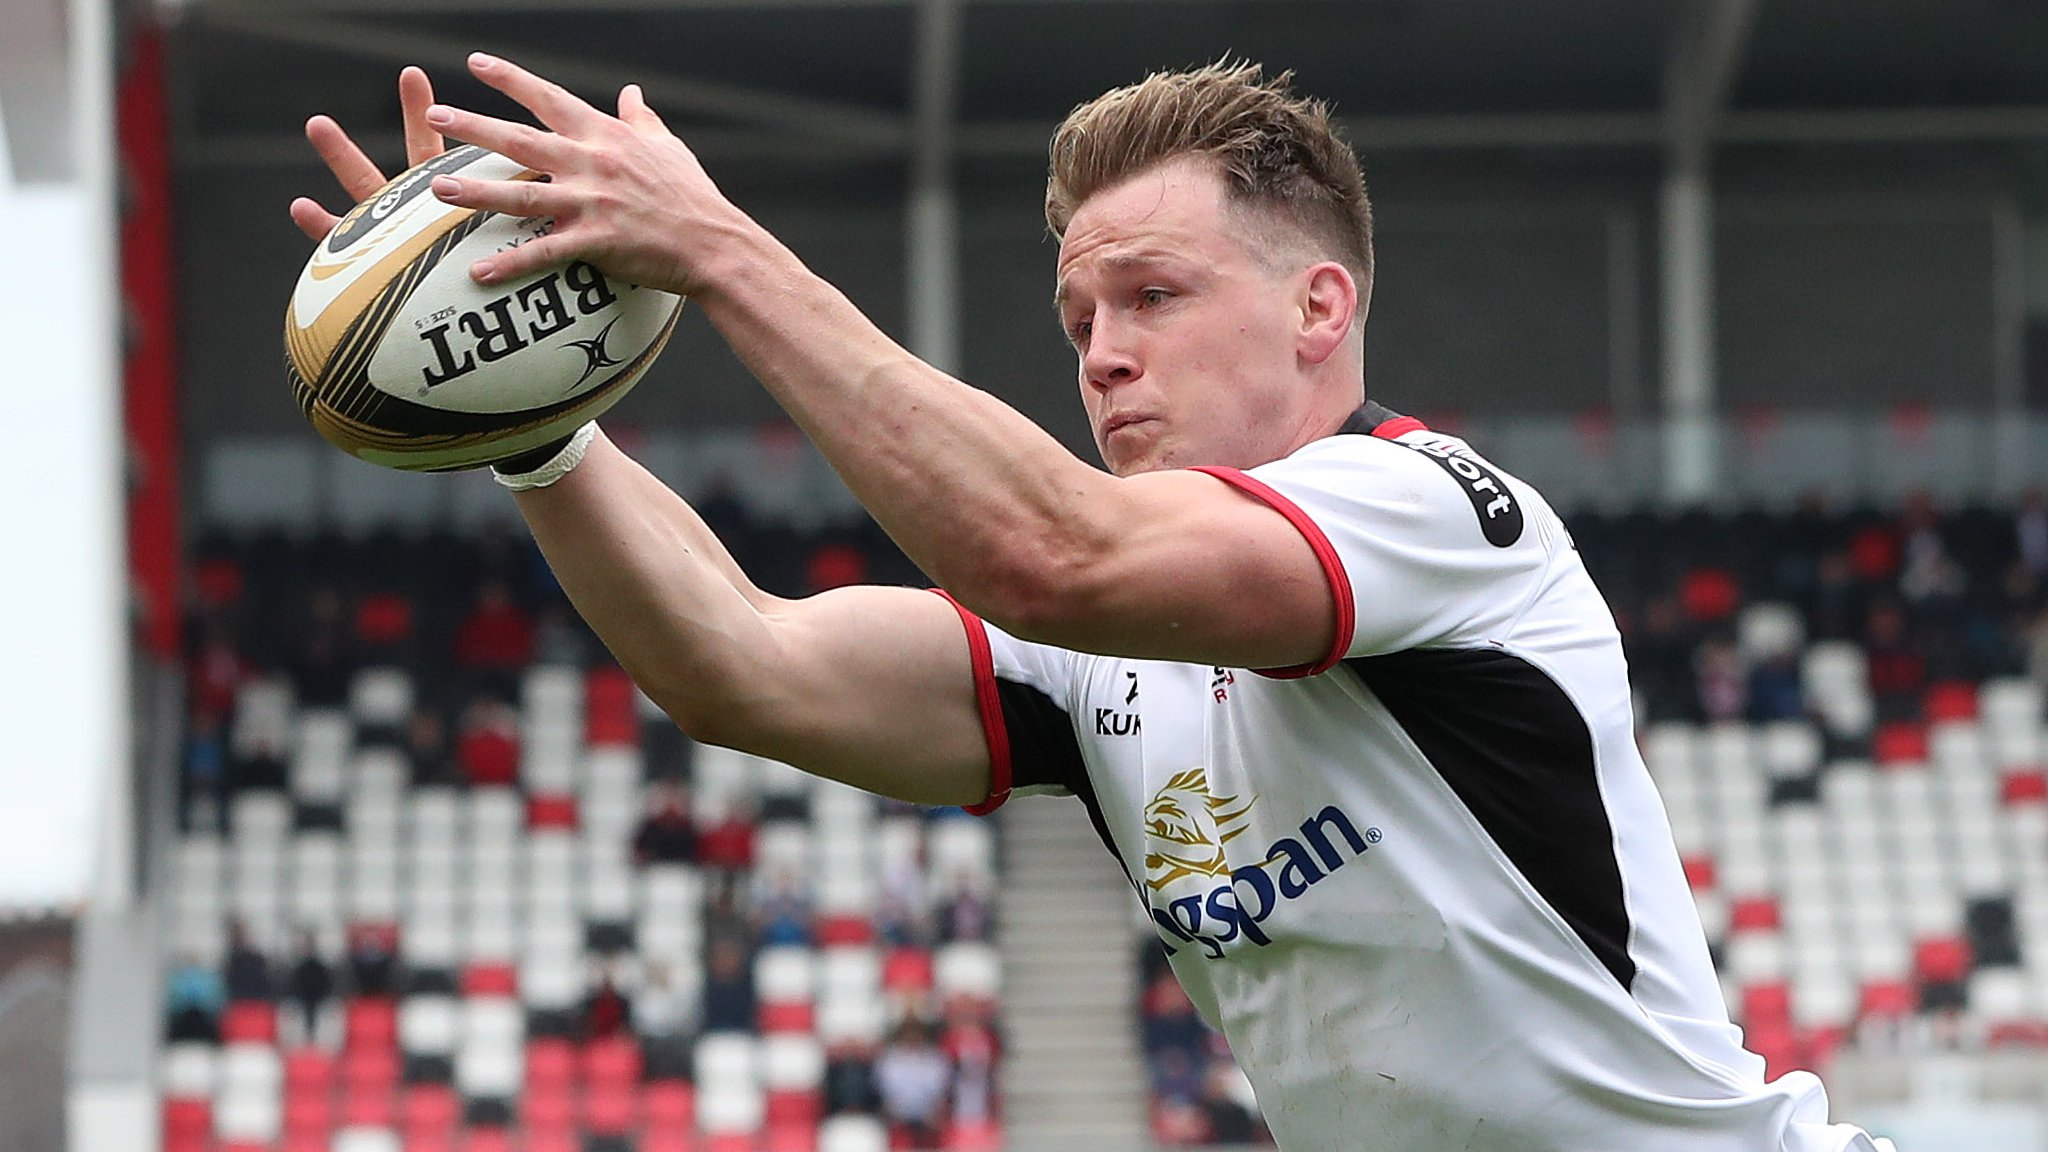 European Champions Cup play-off: Ulster 35-17 Ospreys